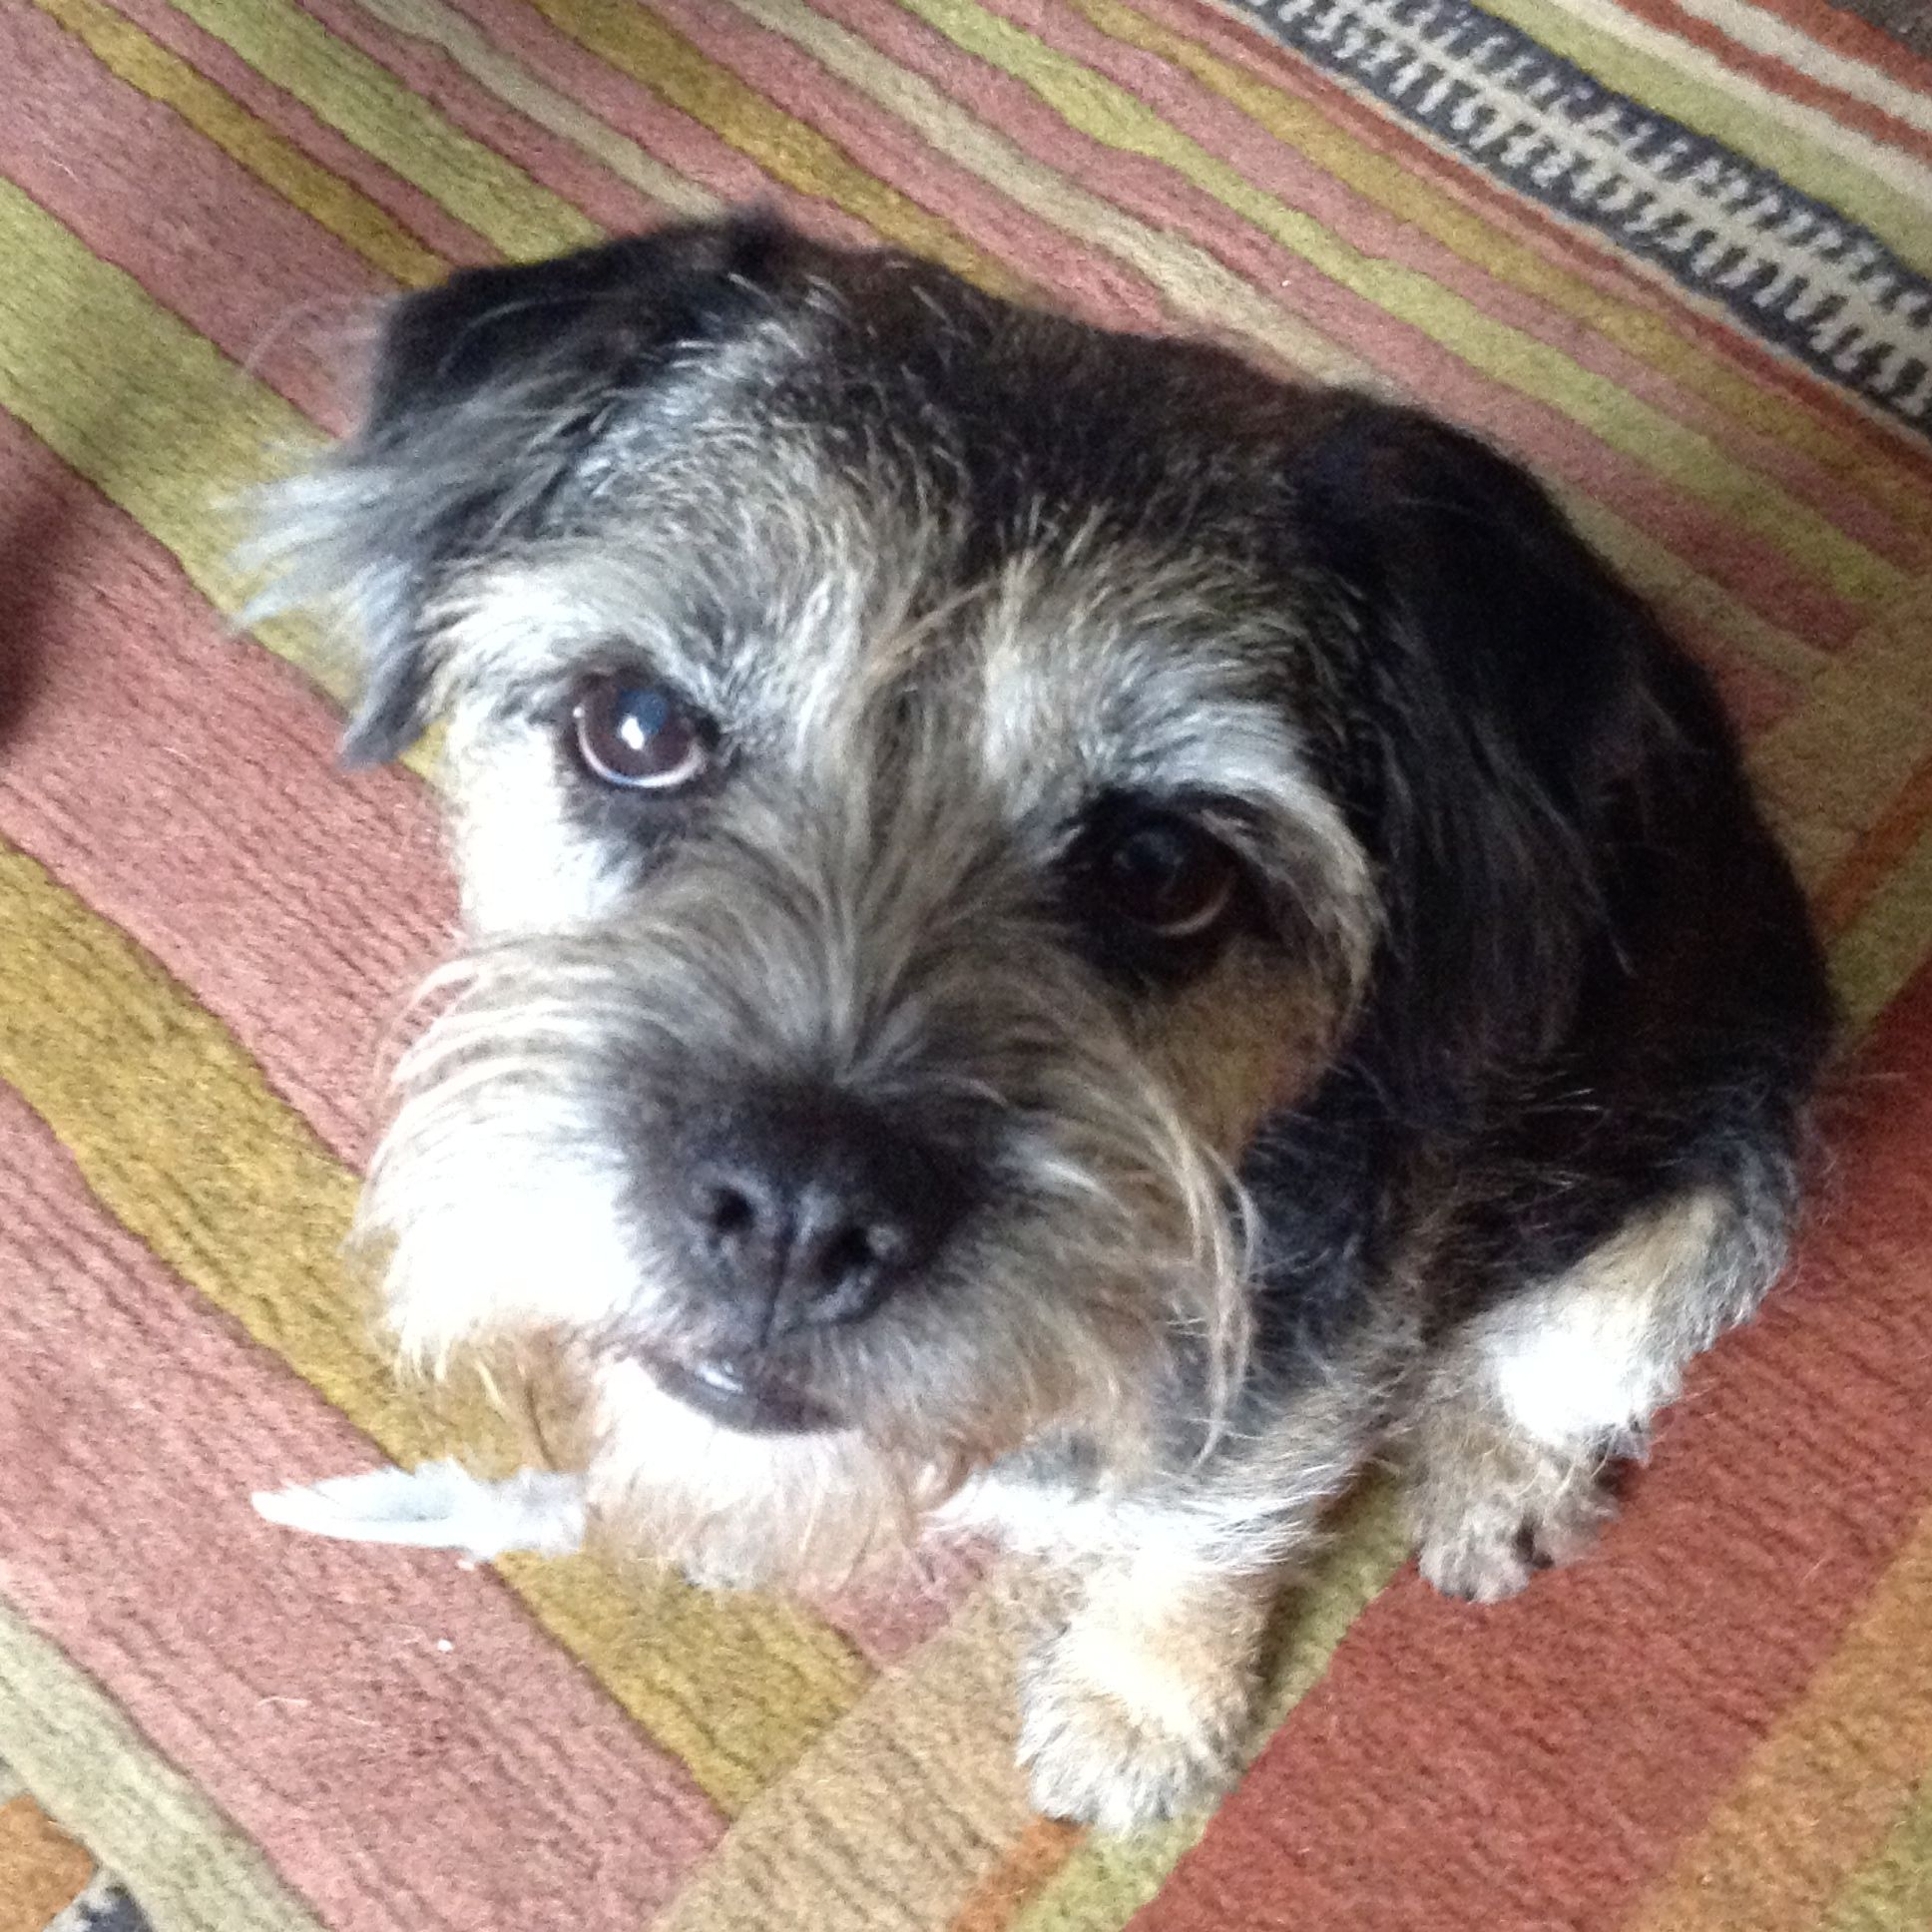 Border Terrier Feather On A Chin Sniffed A Dead Pigeon Killed